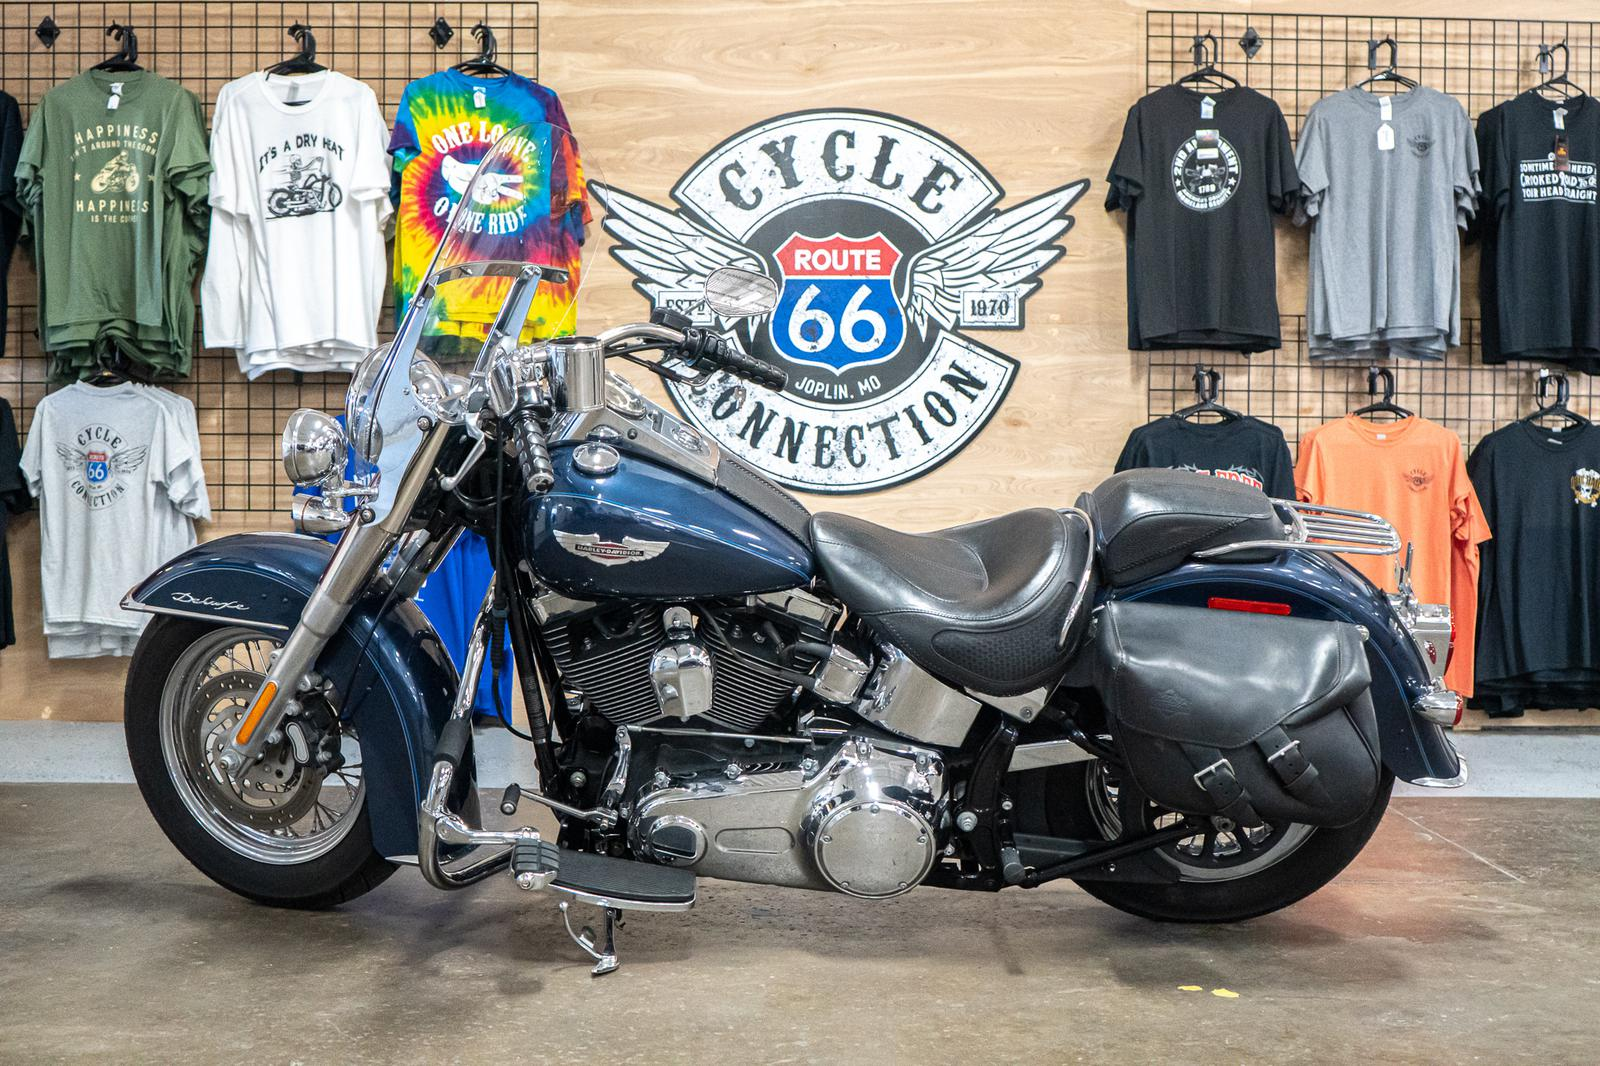 2008 Harley Davidson Softail Deluxe For Sale In Joplin Mo Cycle Connection Joplin Mo 417 383 5550